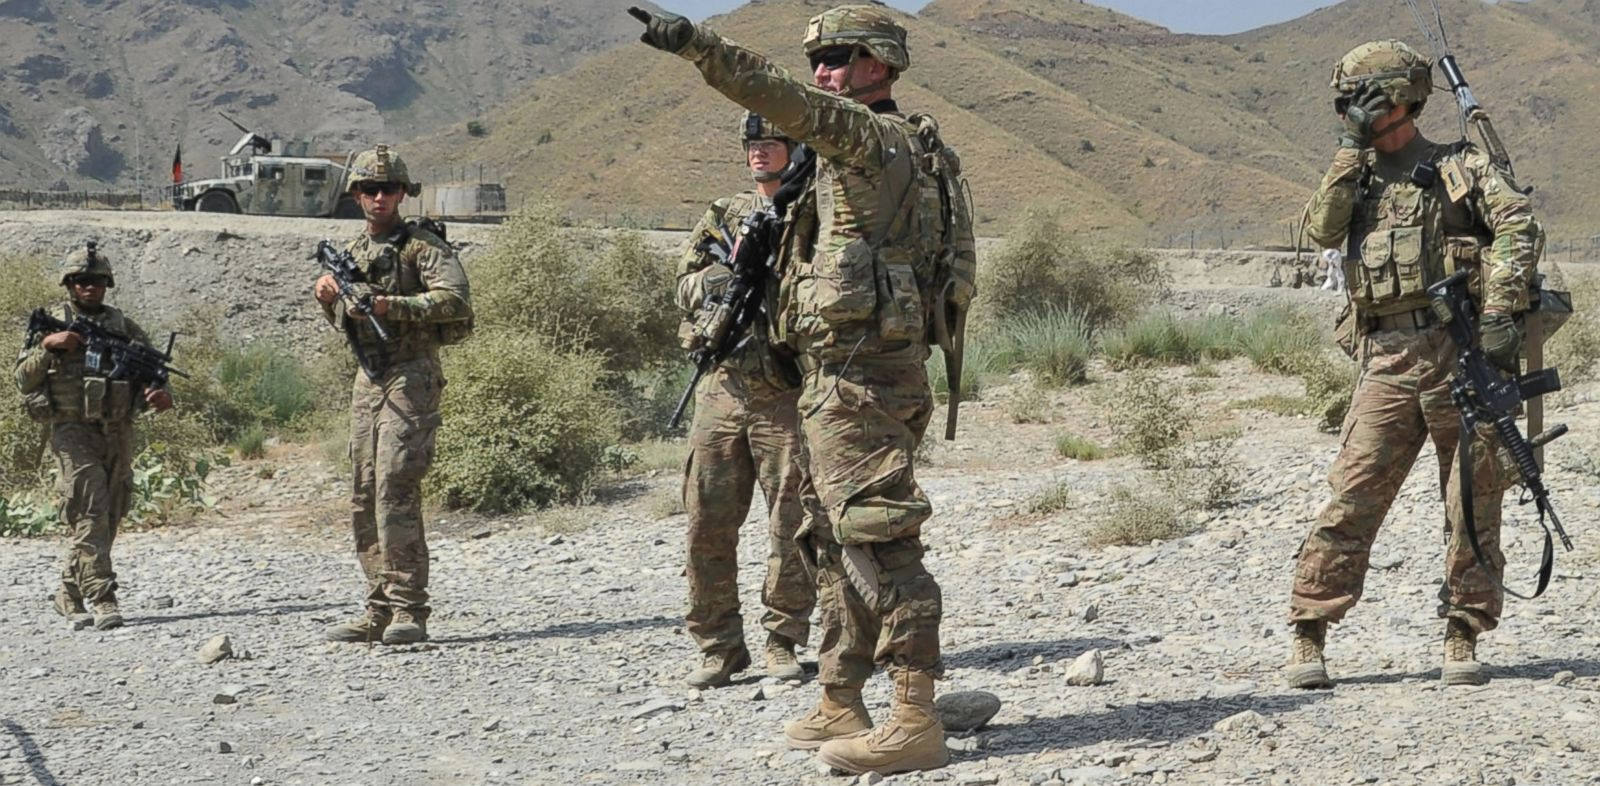 PHOTO: US soldiers gather after a clash between Taliban and Afghan security forces in Torkham